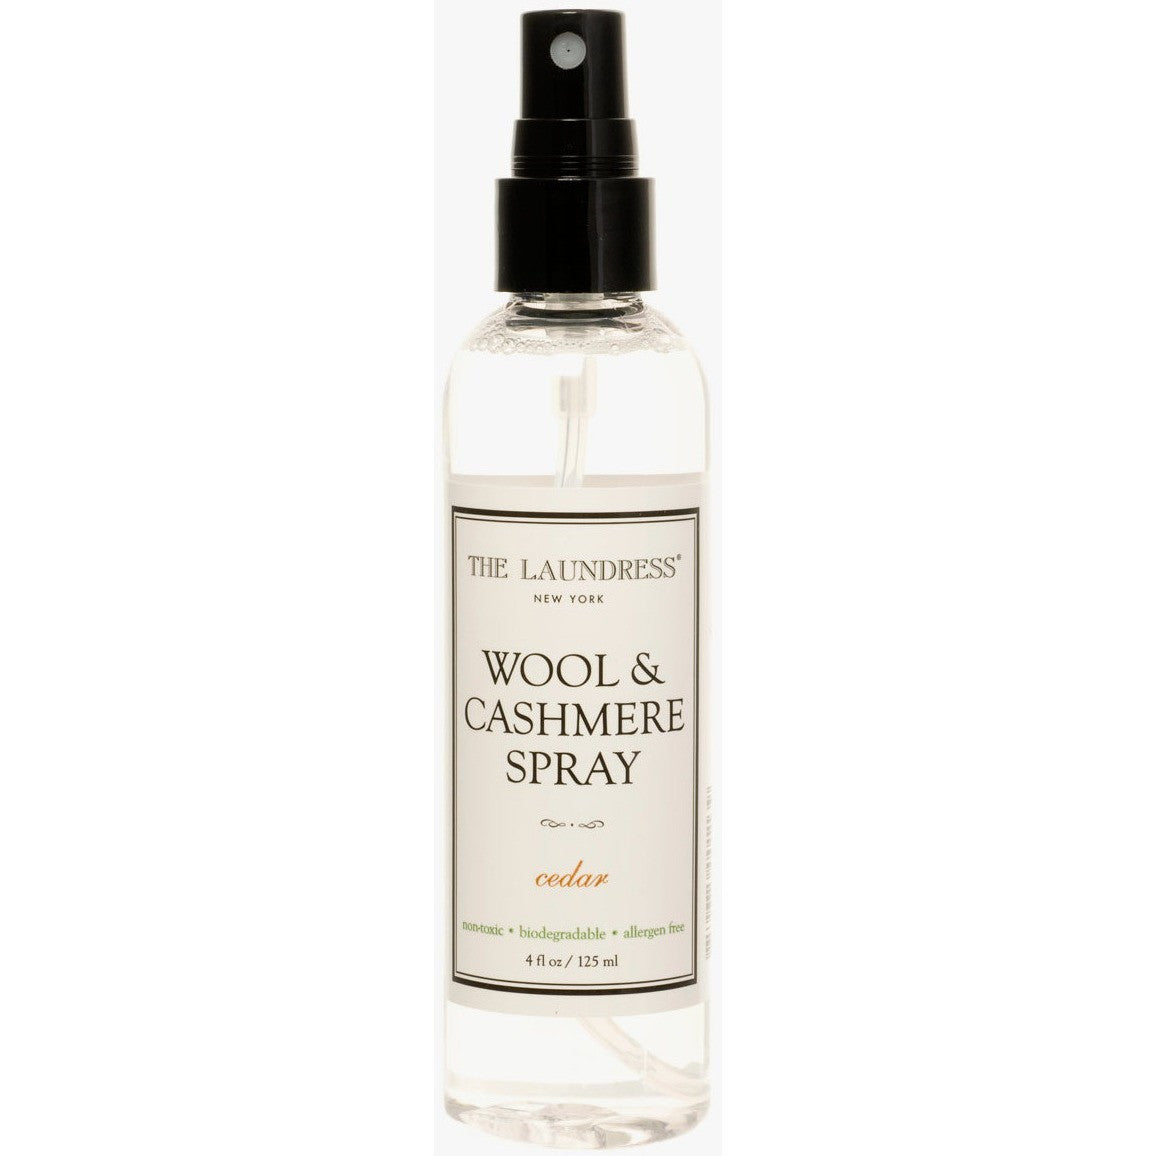 the laundress | wool & cashmere spray[product_type ]the laundress - Kiss and Makeup